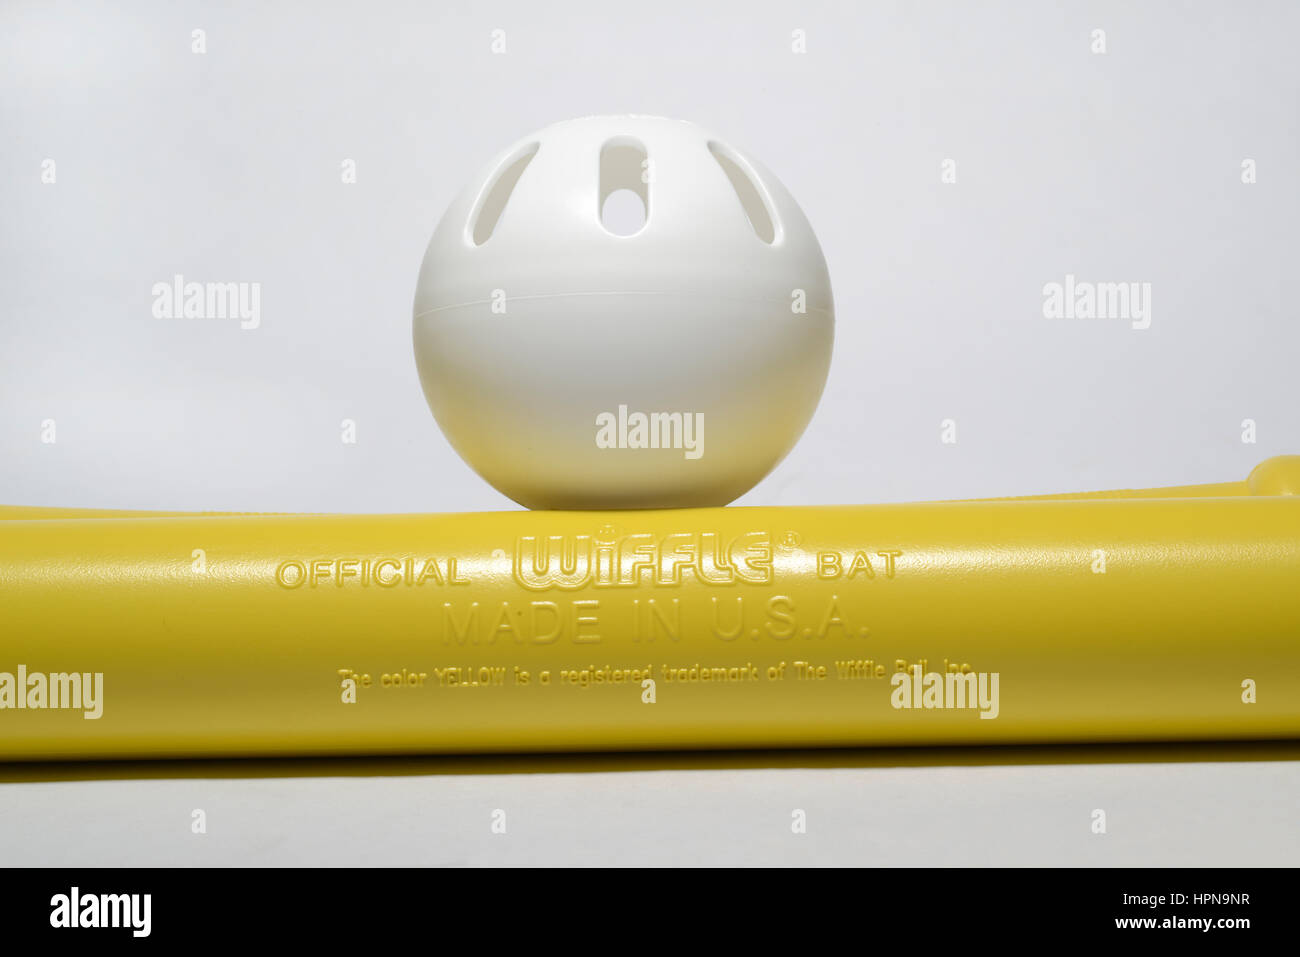 Wiffle ball and bats.  Made by The Wiffle Ball Inc.  Invented by the Mullany family of Connecticut.  They have registered - Stock Image